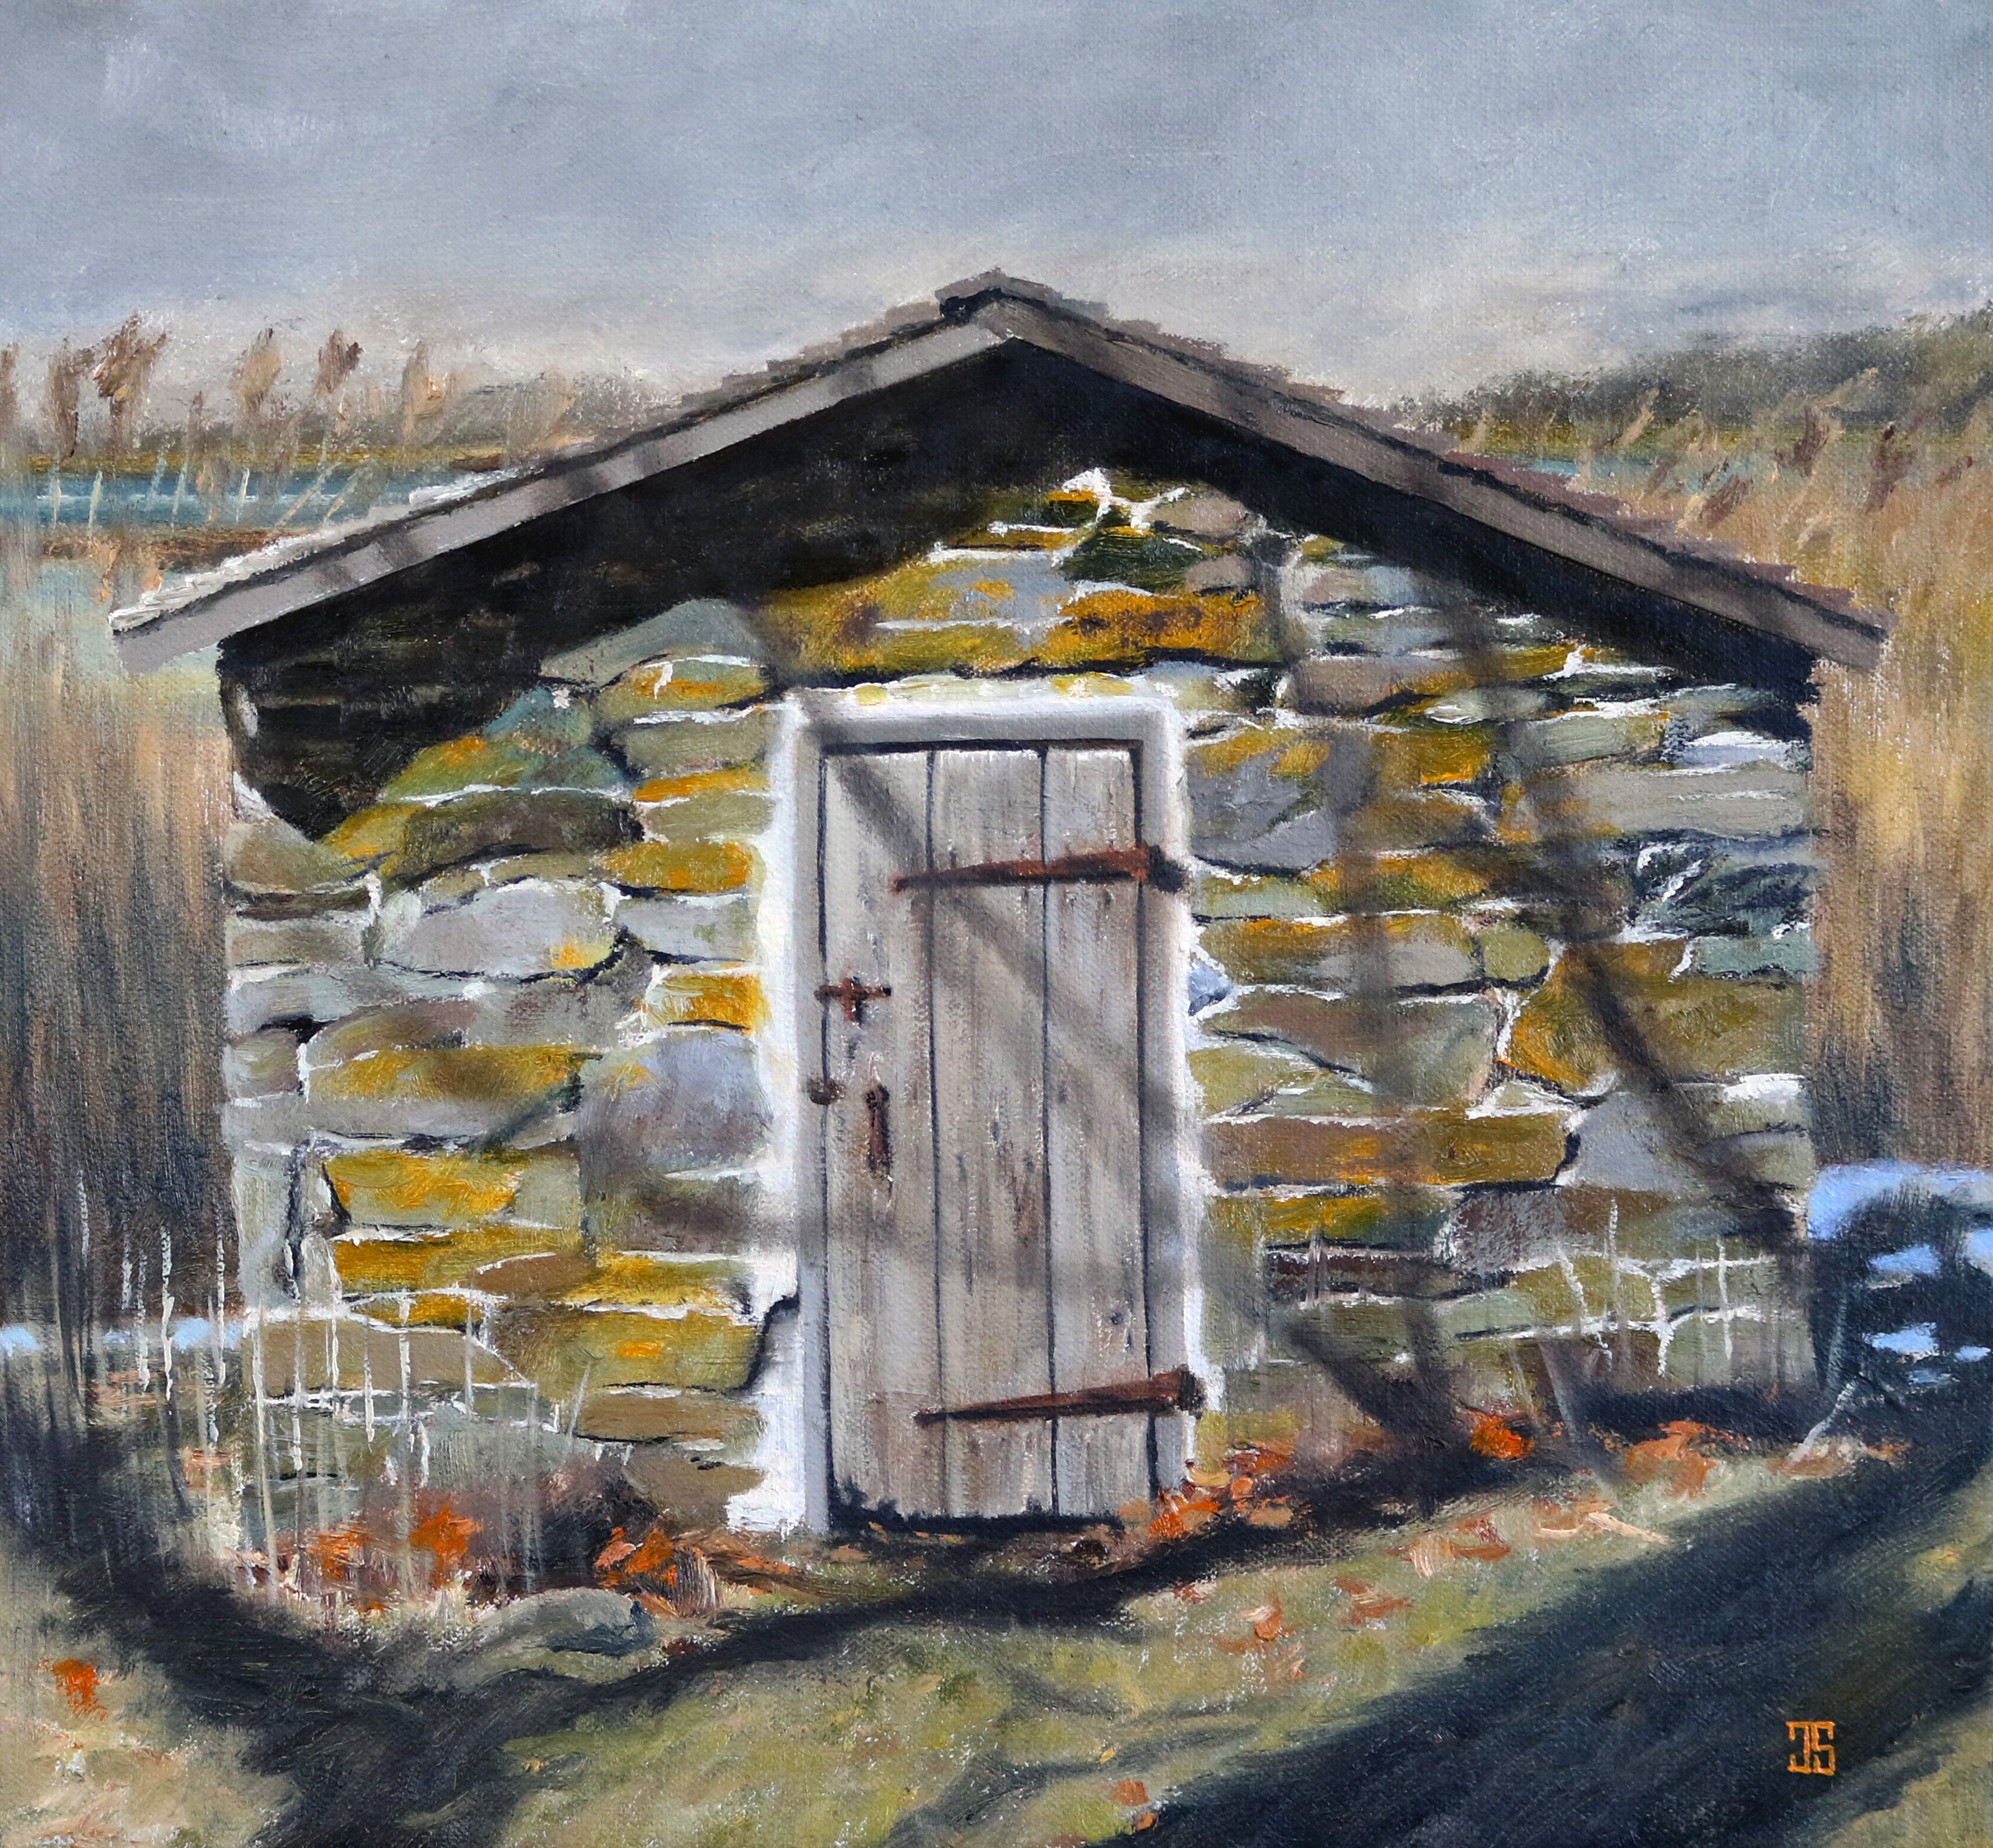 Oil painting of old house where the tiger lives by Jeffrey Dale Starr